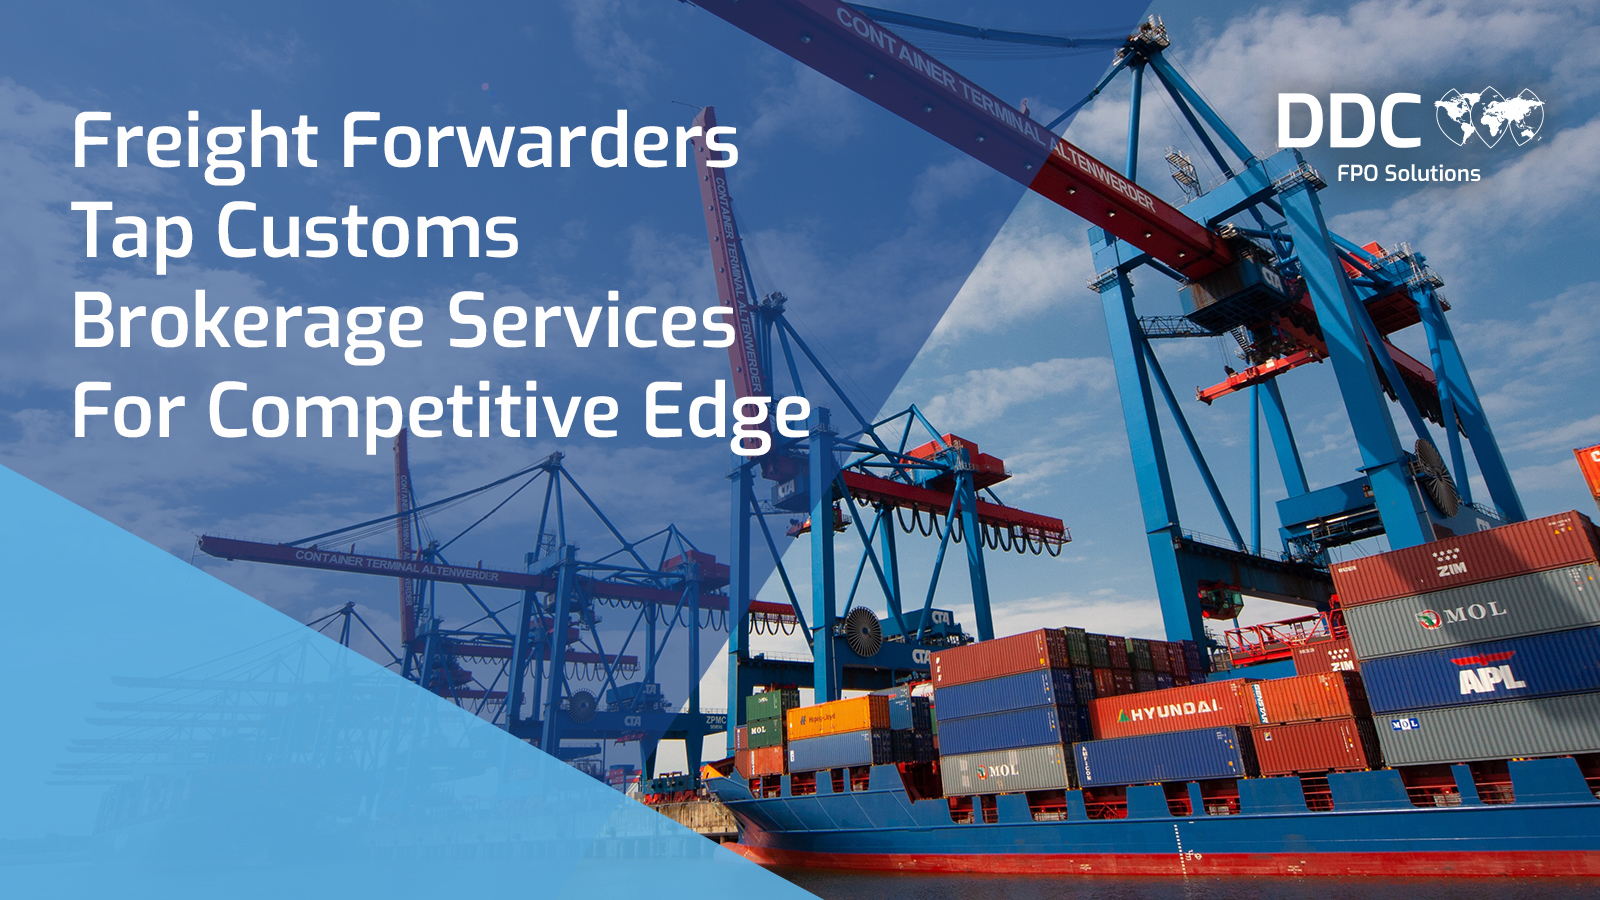 Freight Forwarders Tap Customs Brokerage Services For Competitive Edge